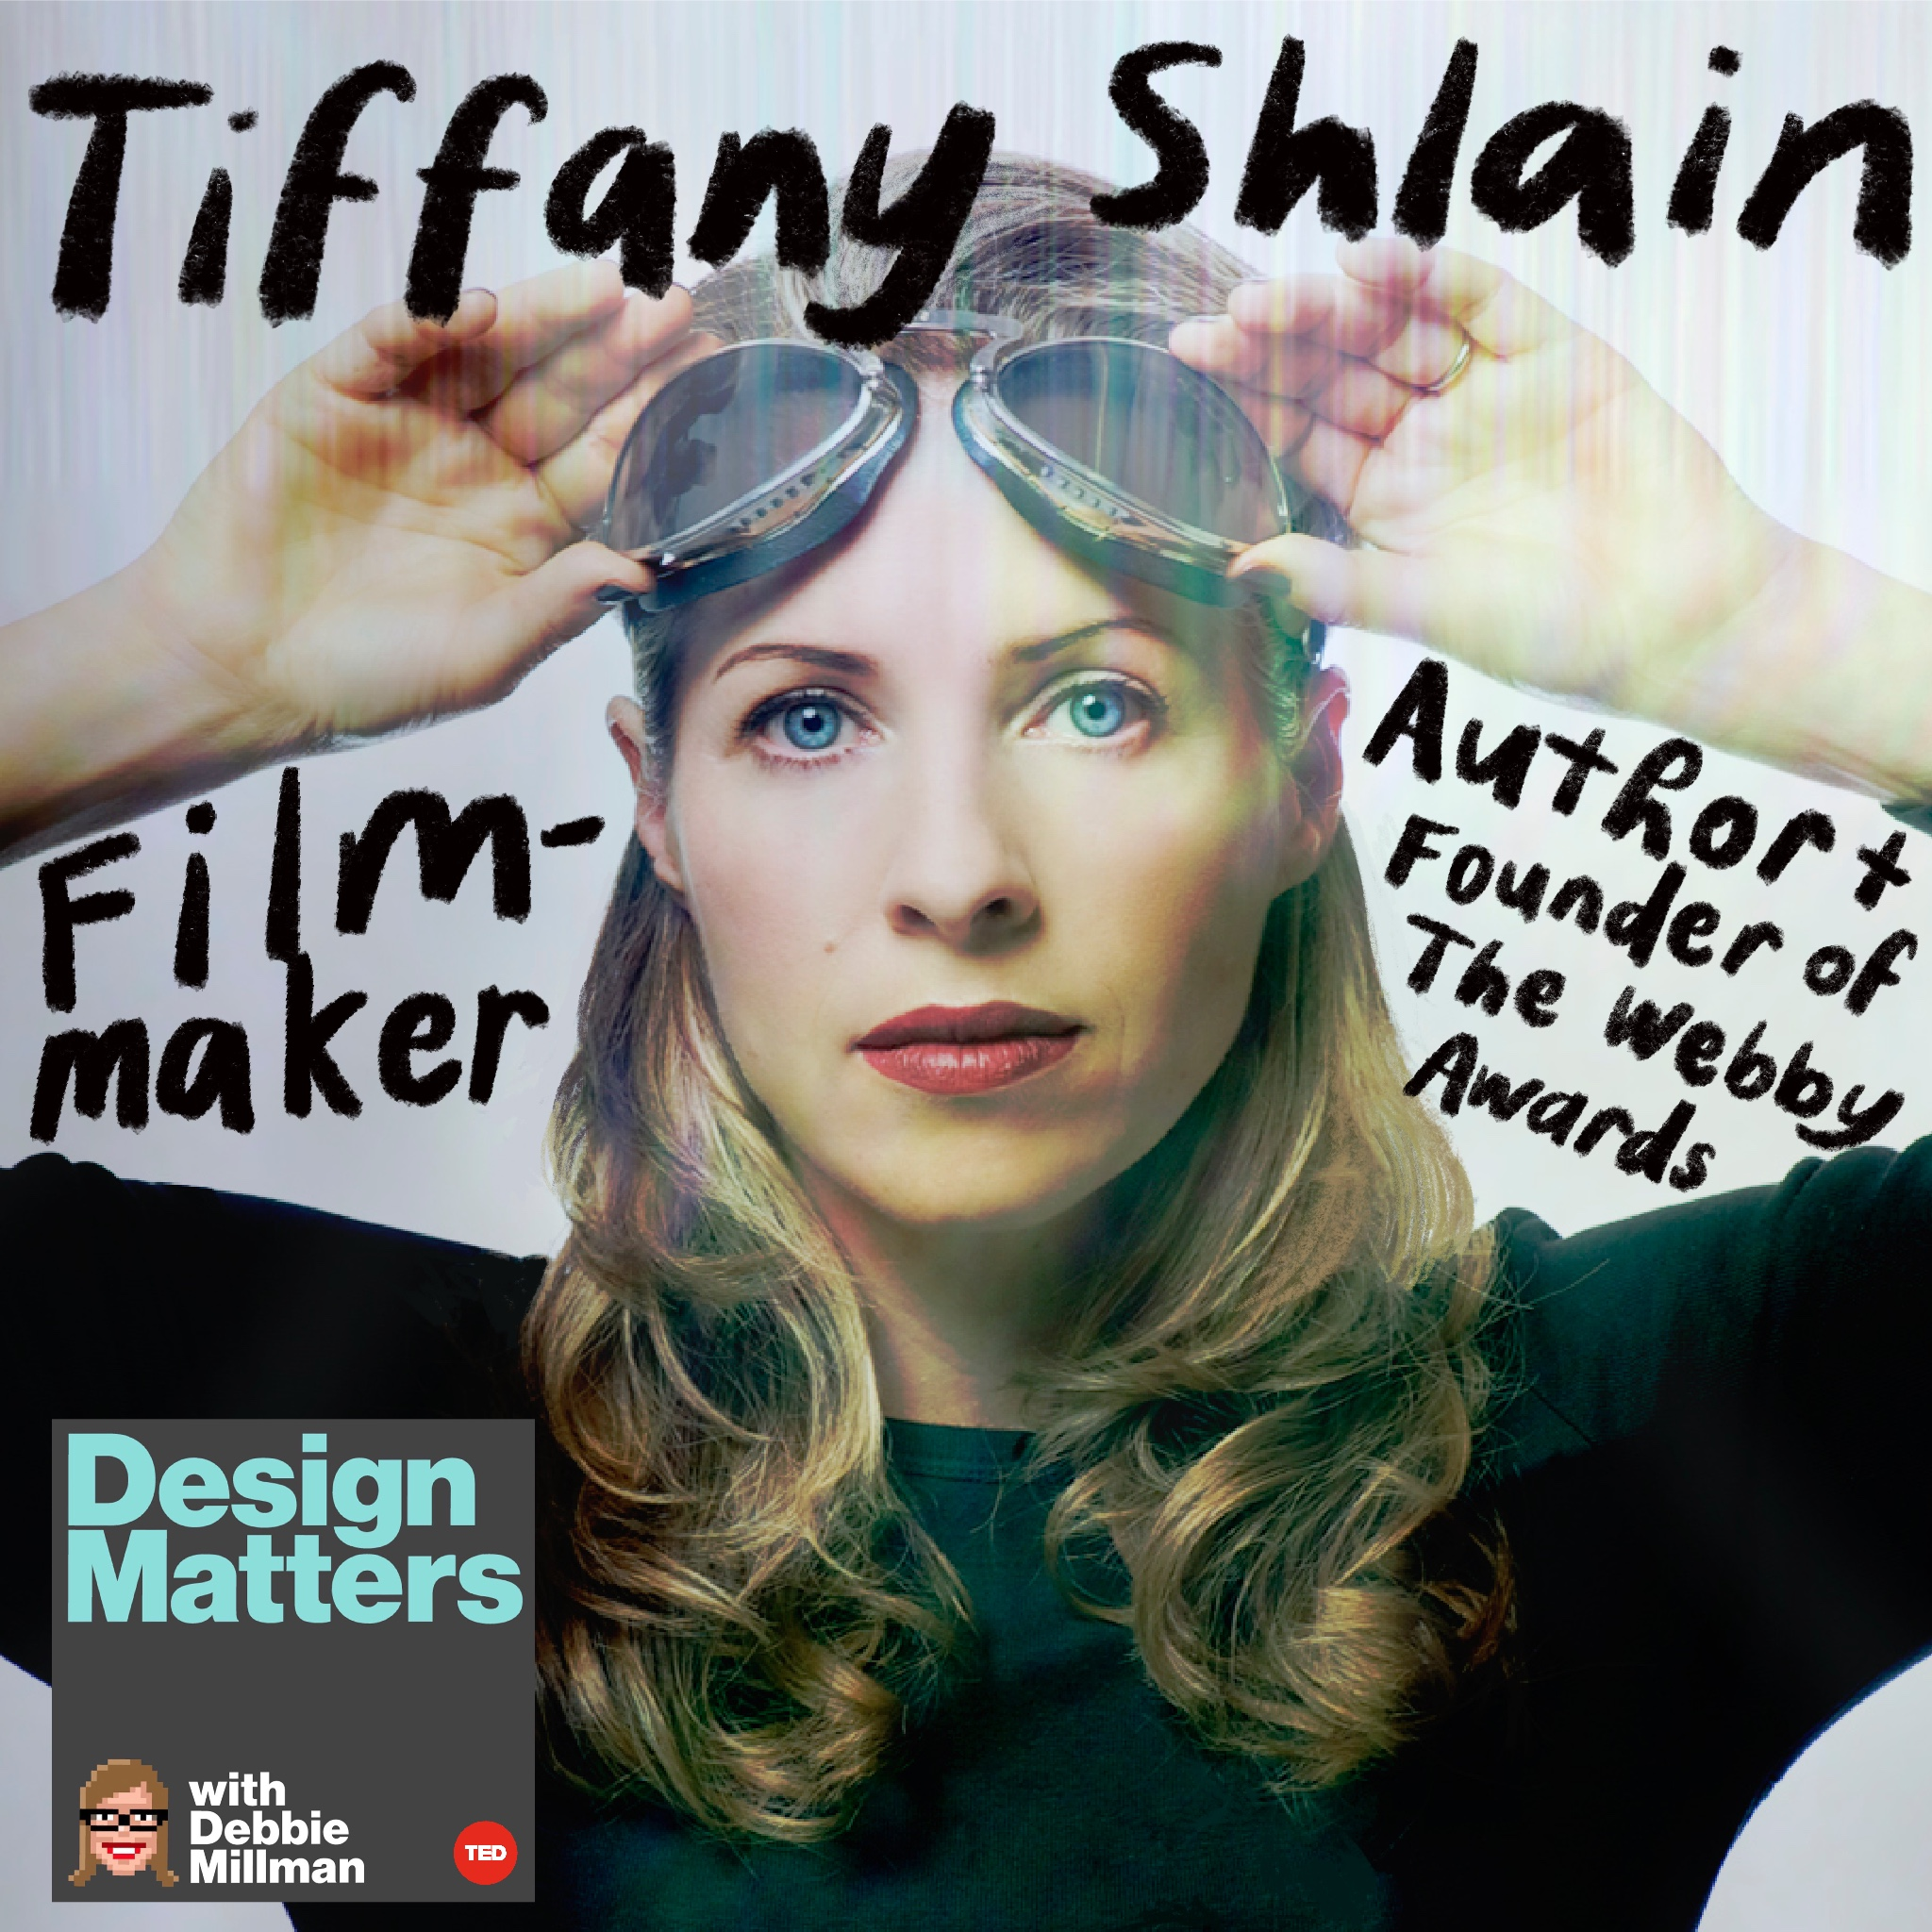 Design Matters From the Archive: Tiffany Shlain